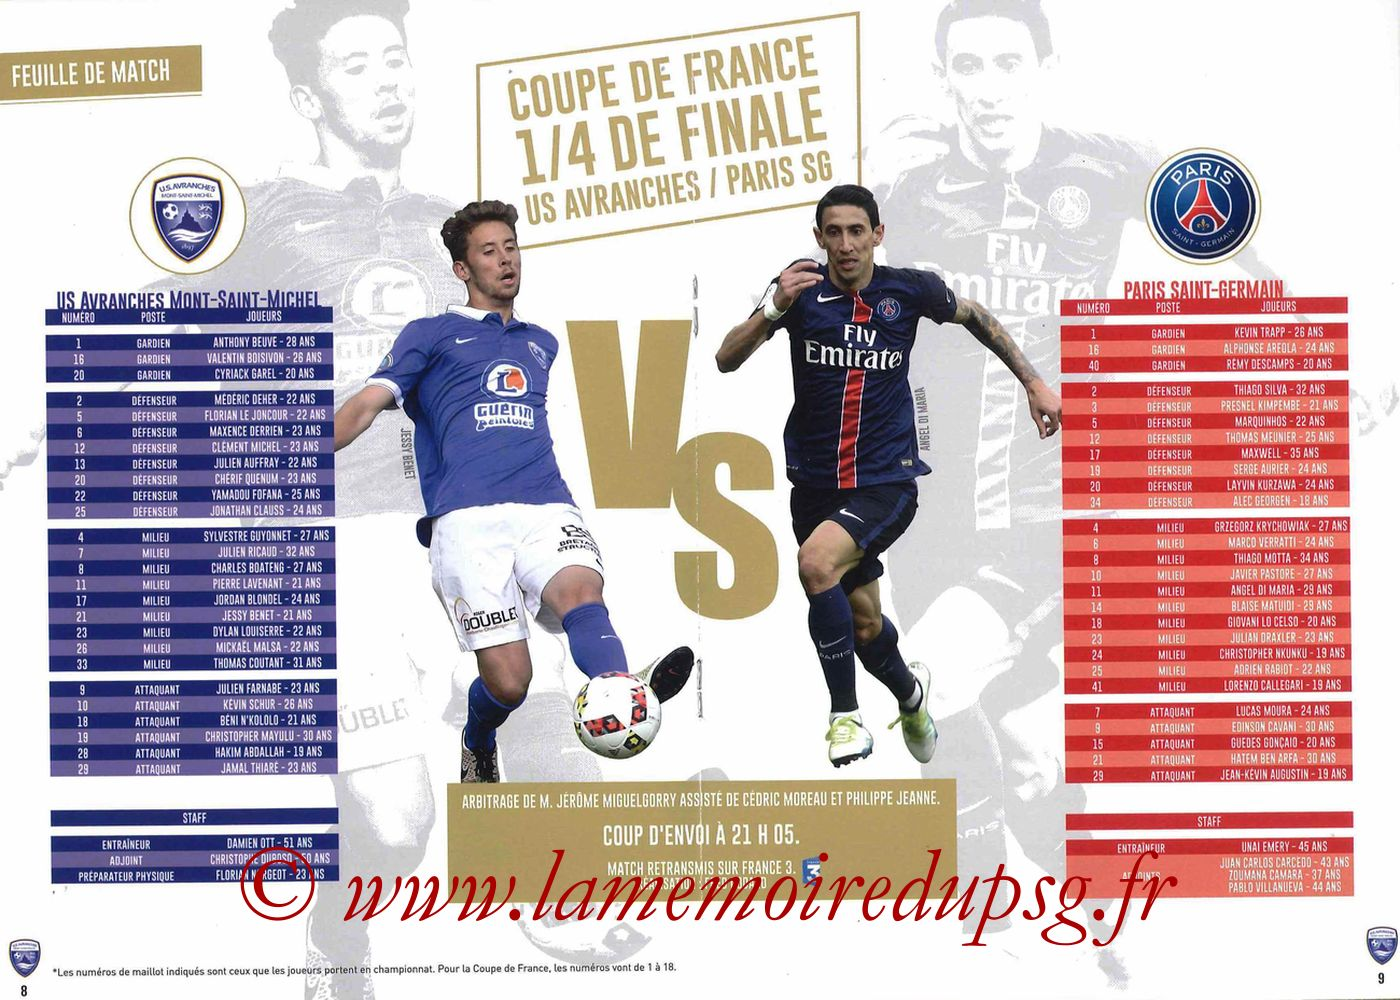 2017-04-05  Avranches-PSG (Quart CF à Caen, Programme officiel) - Pages 08 et 09